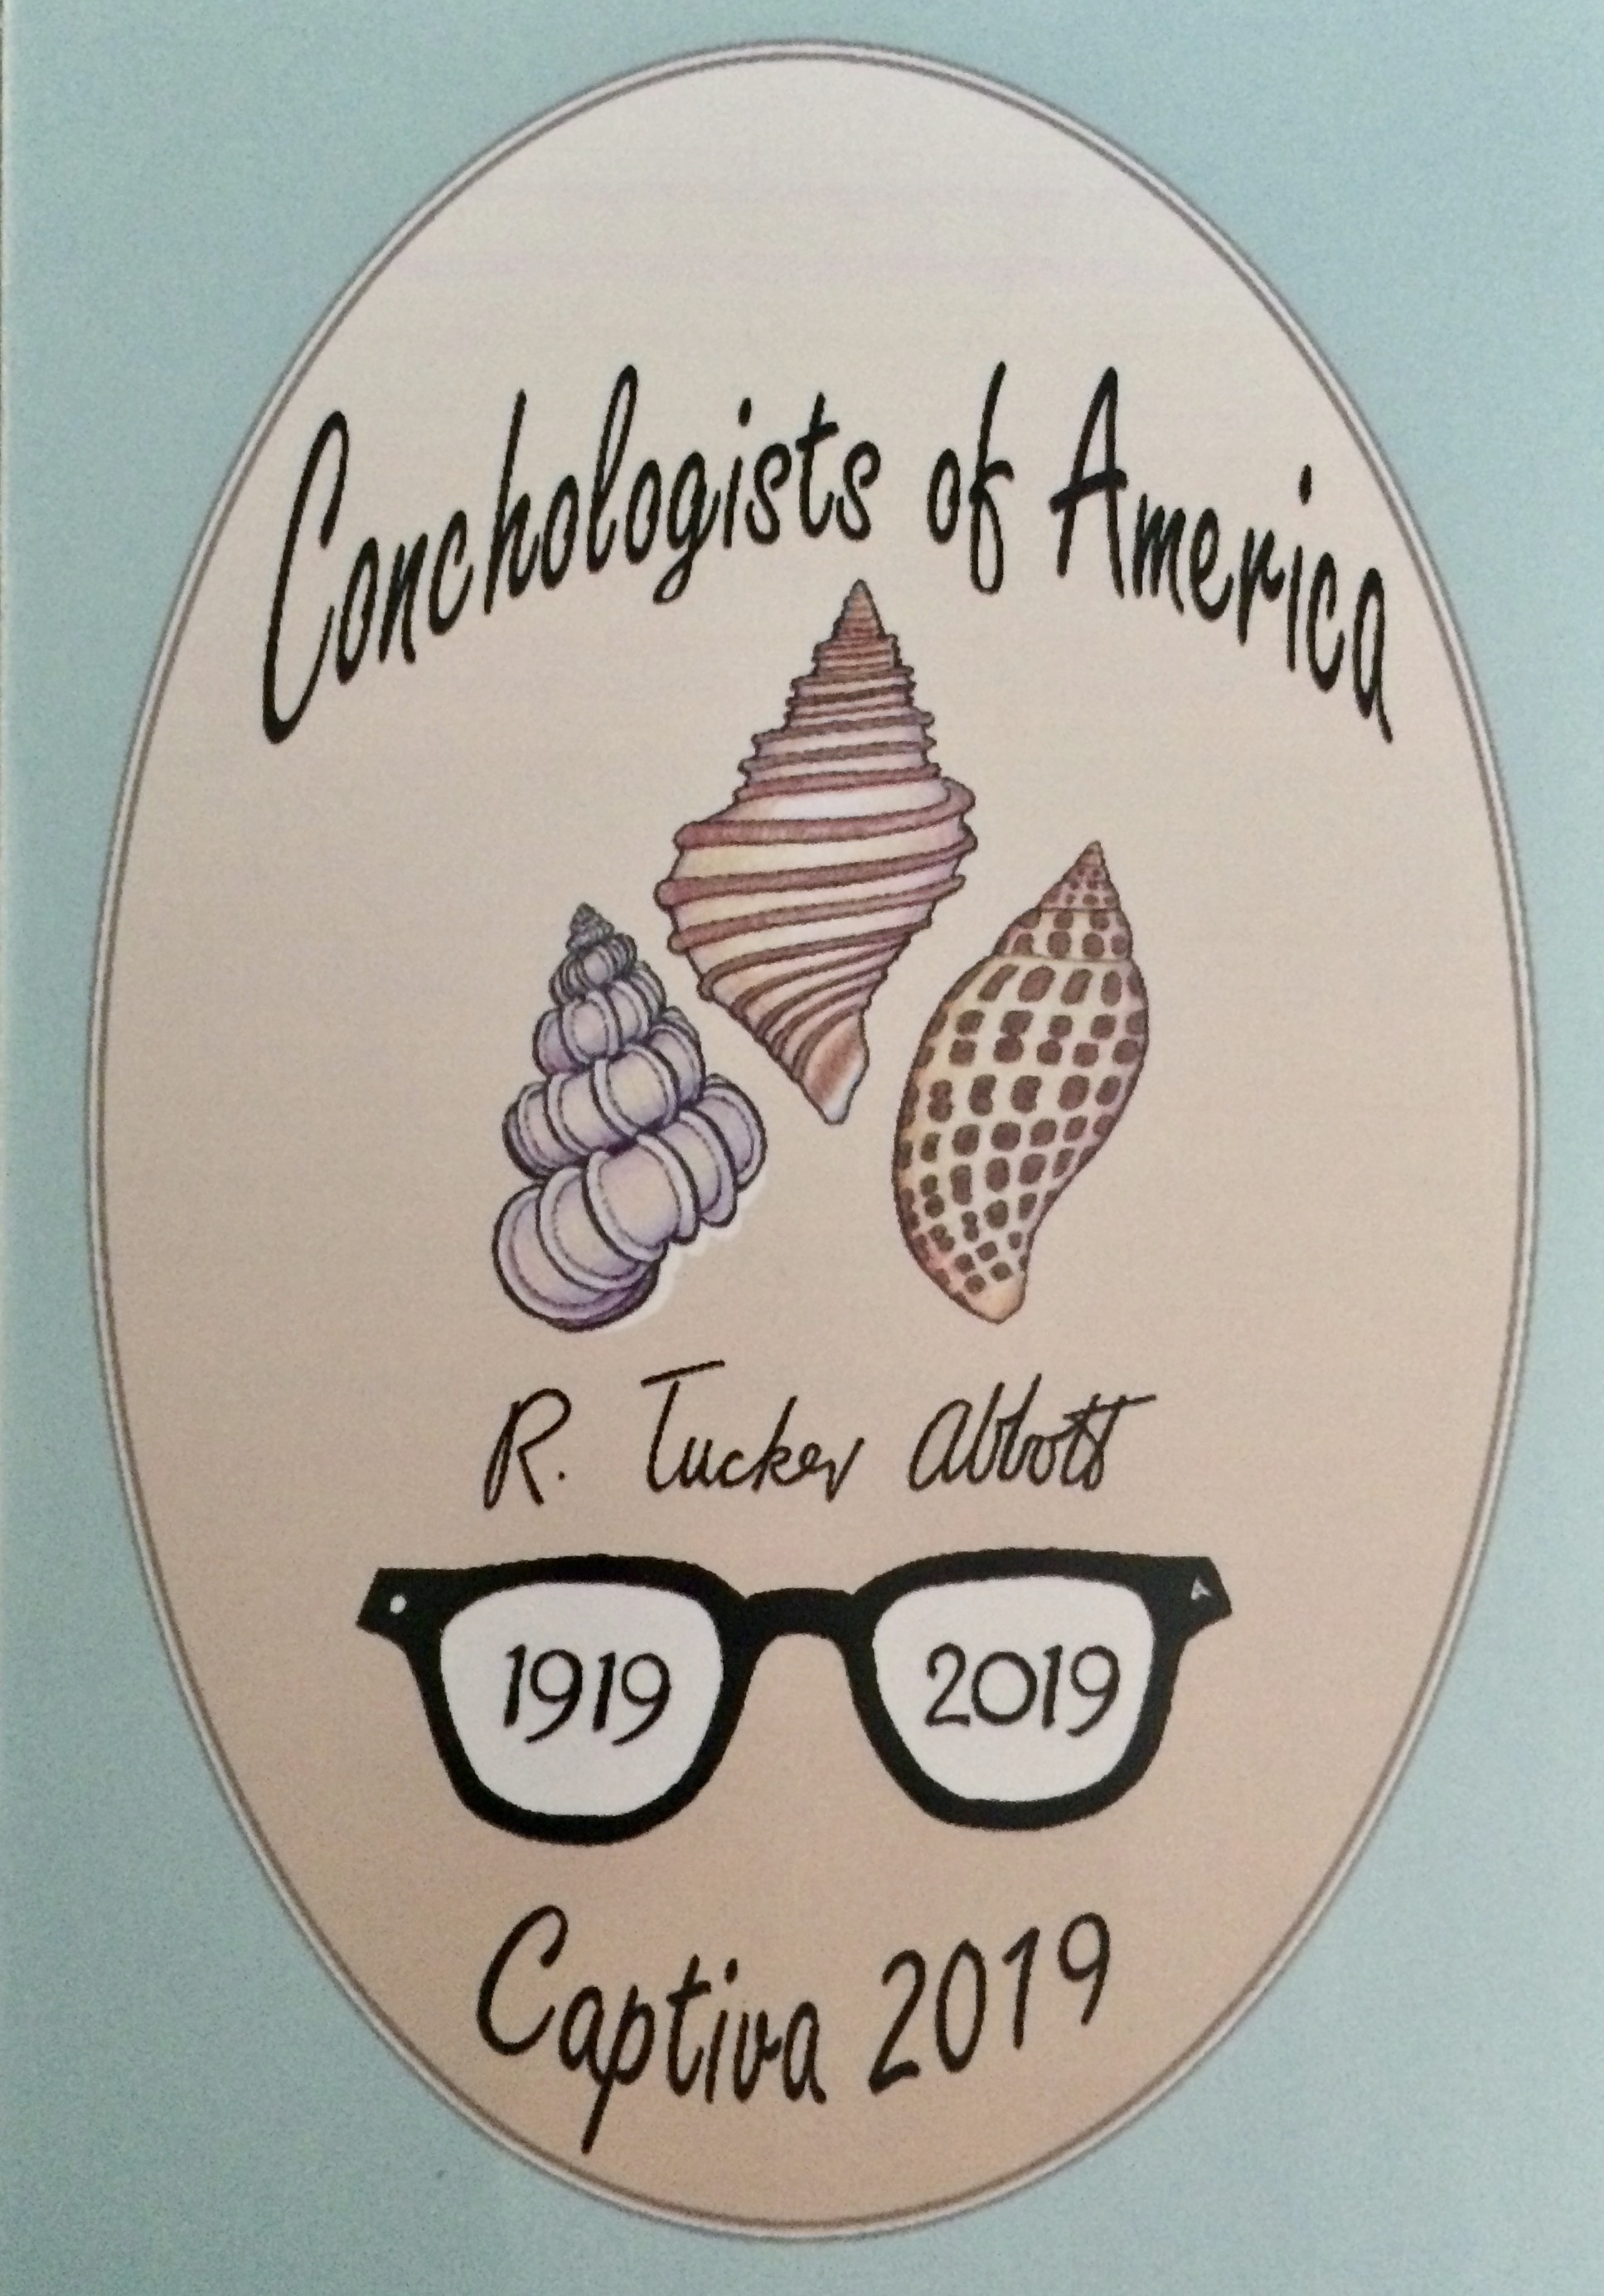 Conchologists Of America Archives